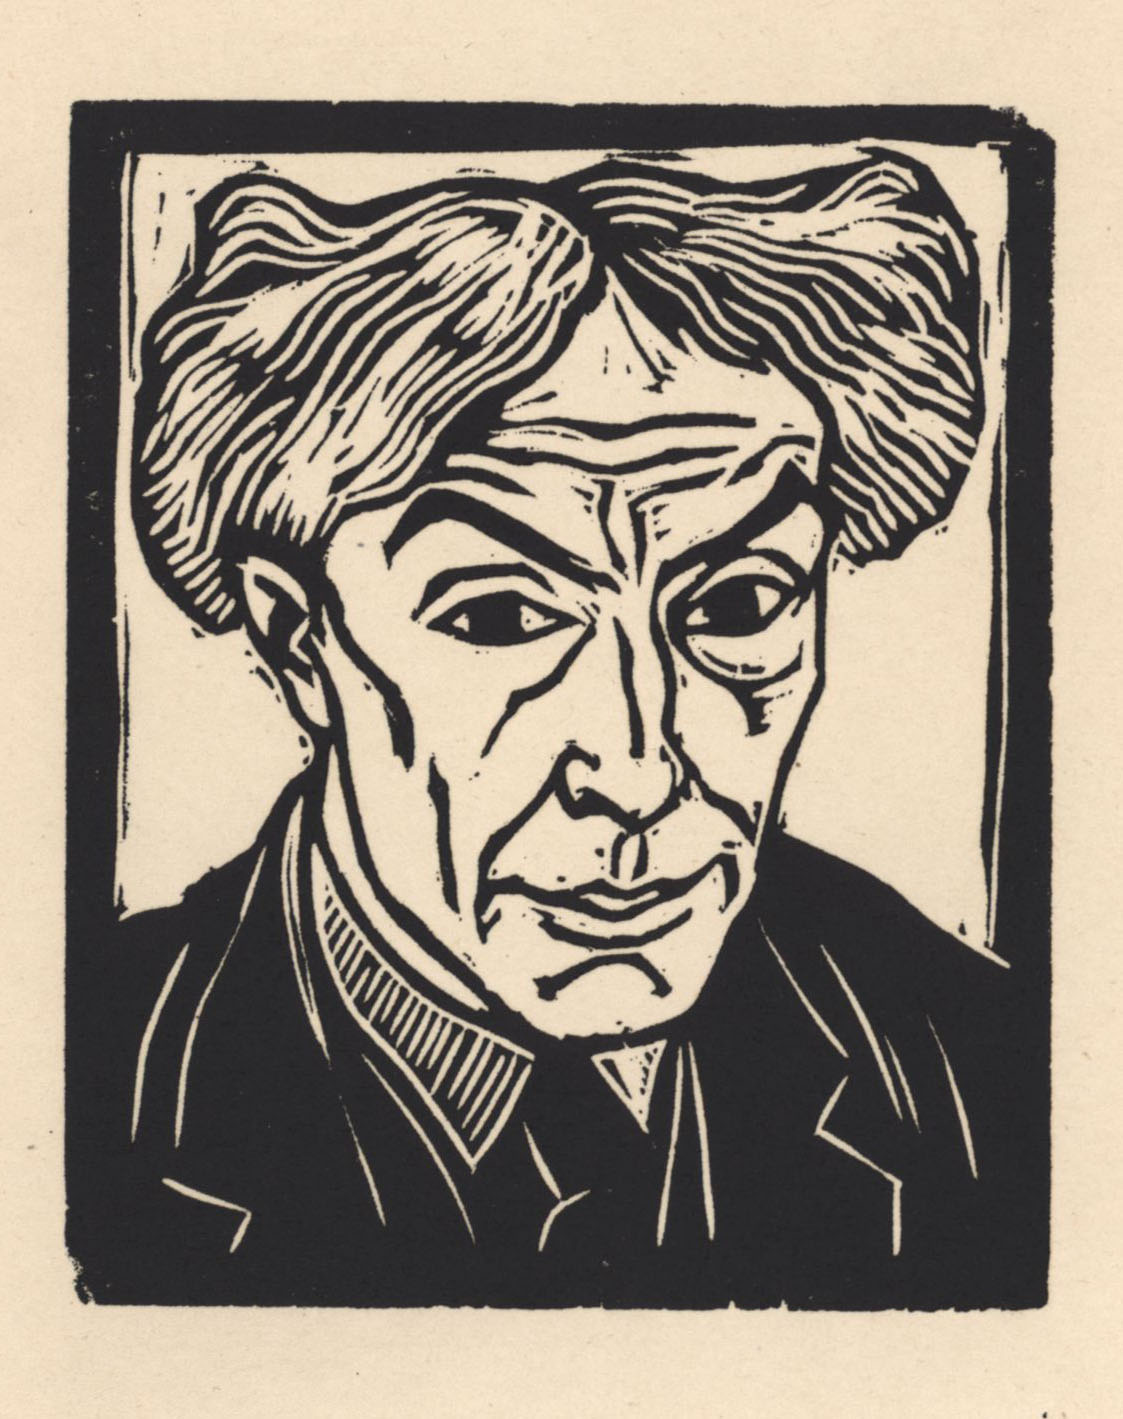 Self-portrait by Roger Fry, taken from 'Twelve Original Woodcuts (1921)